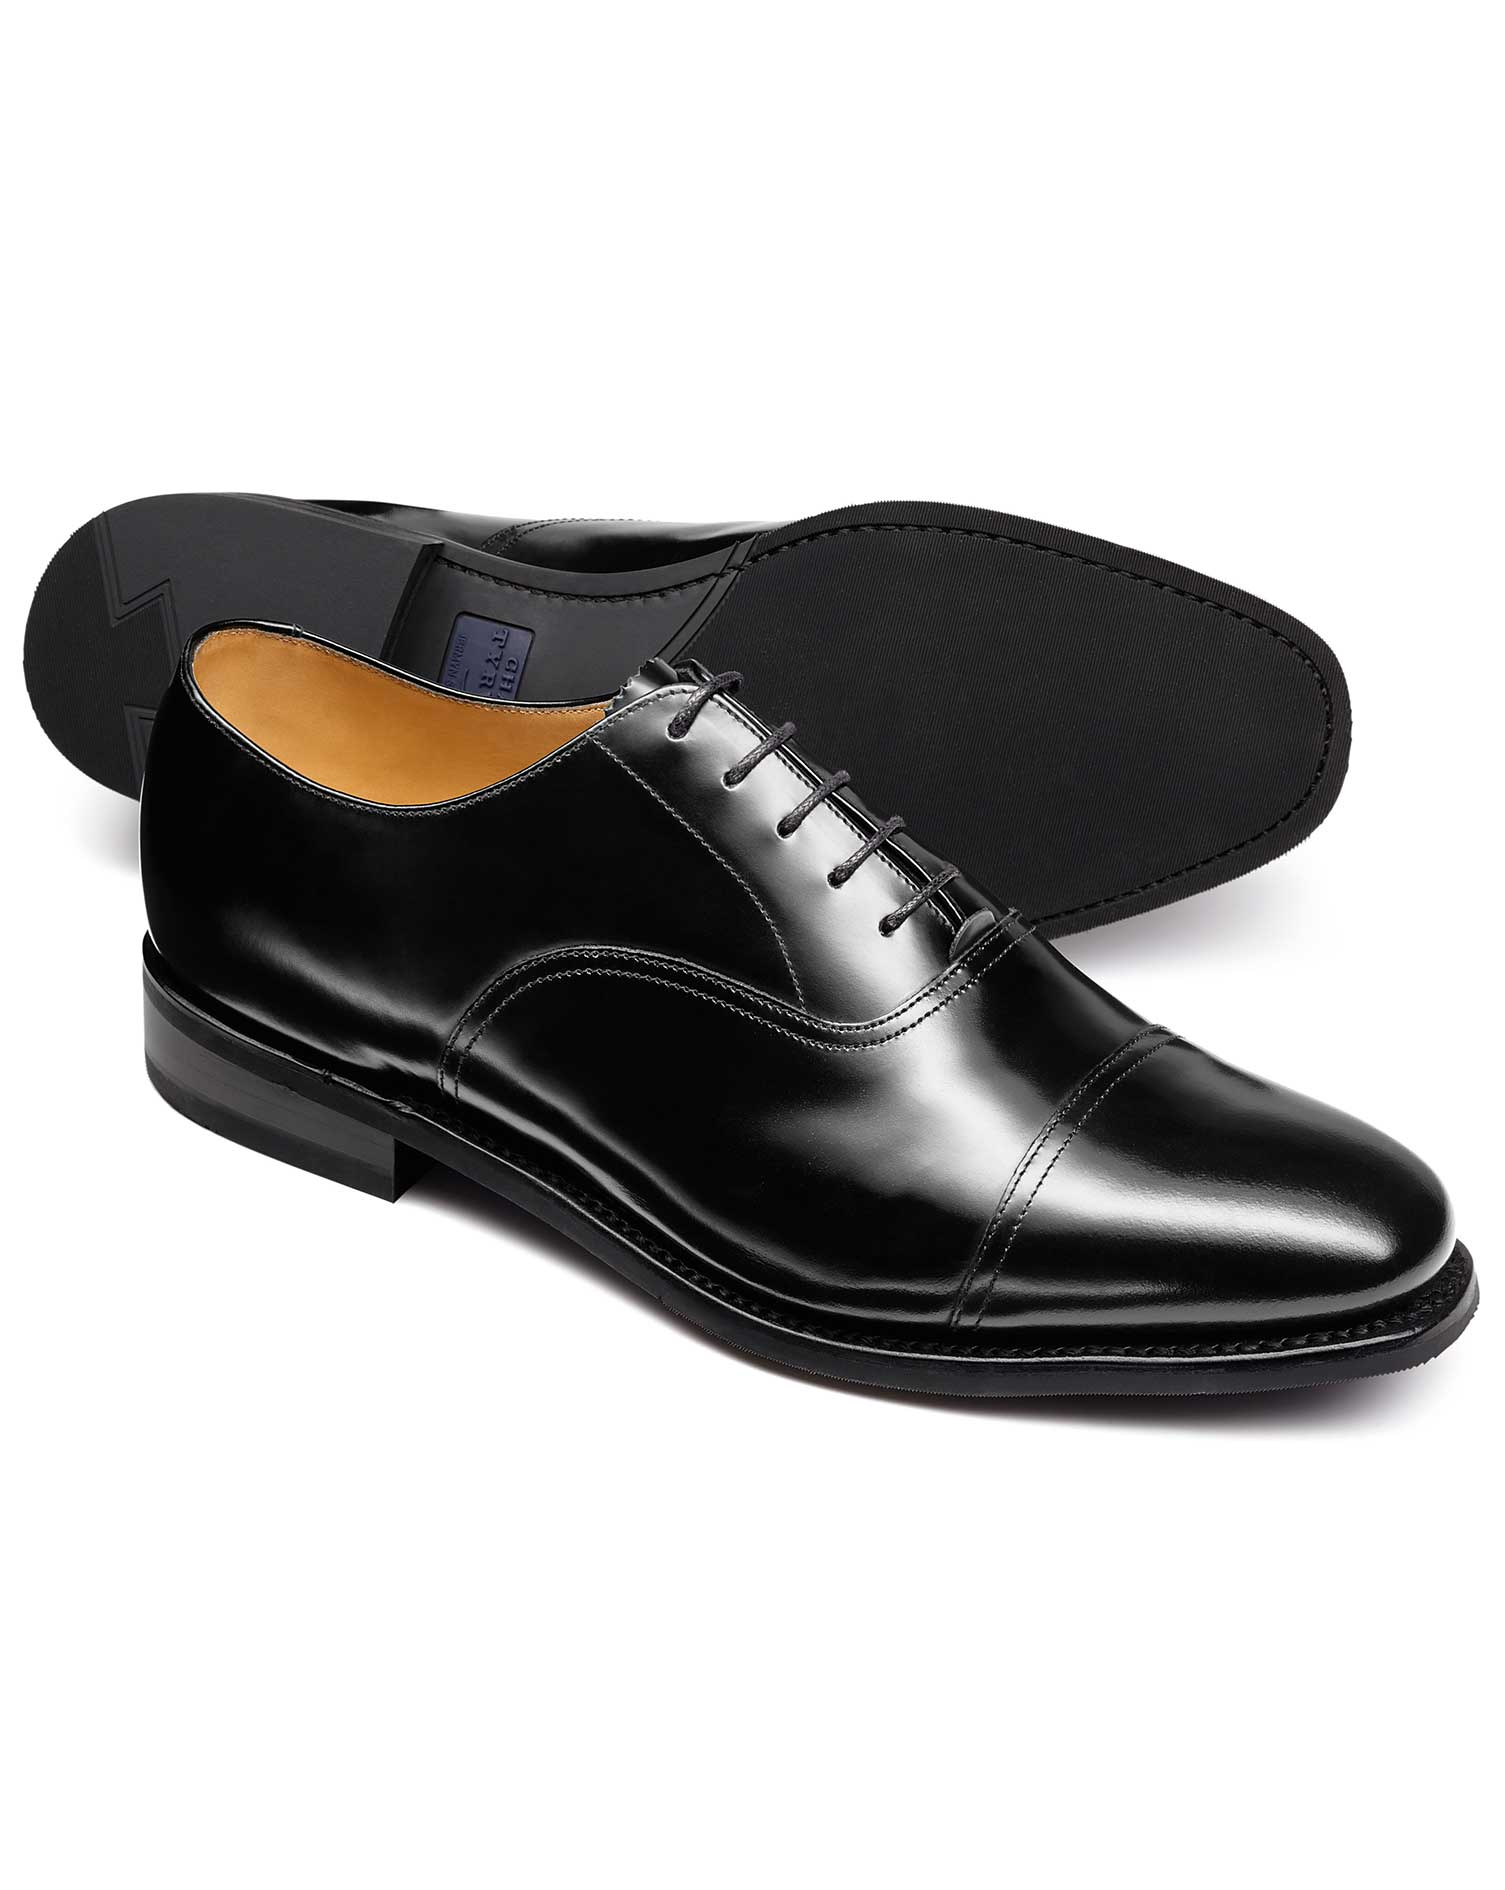 Think Shoes Uk Clearance